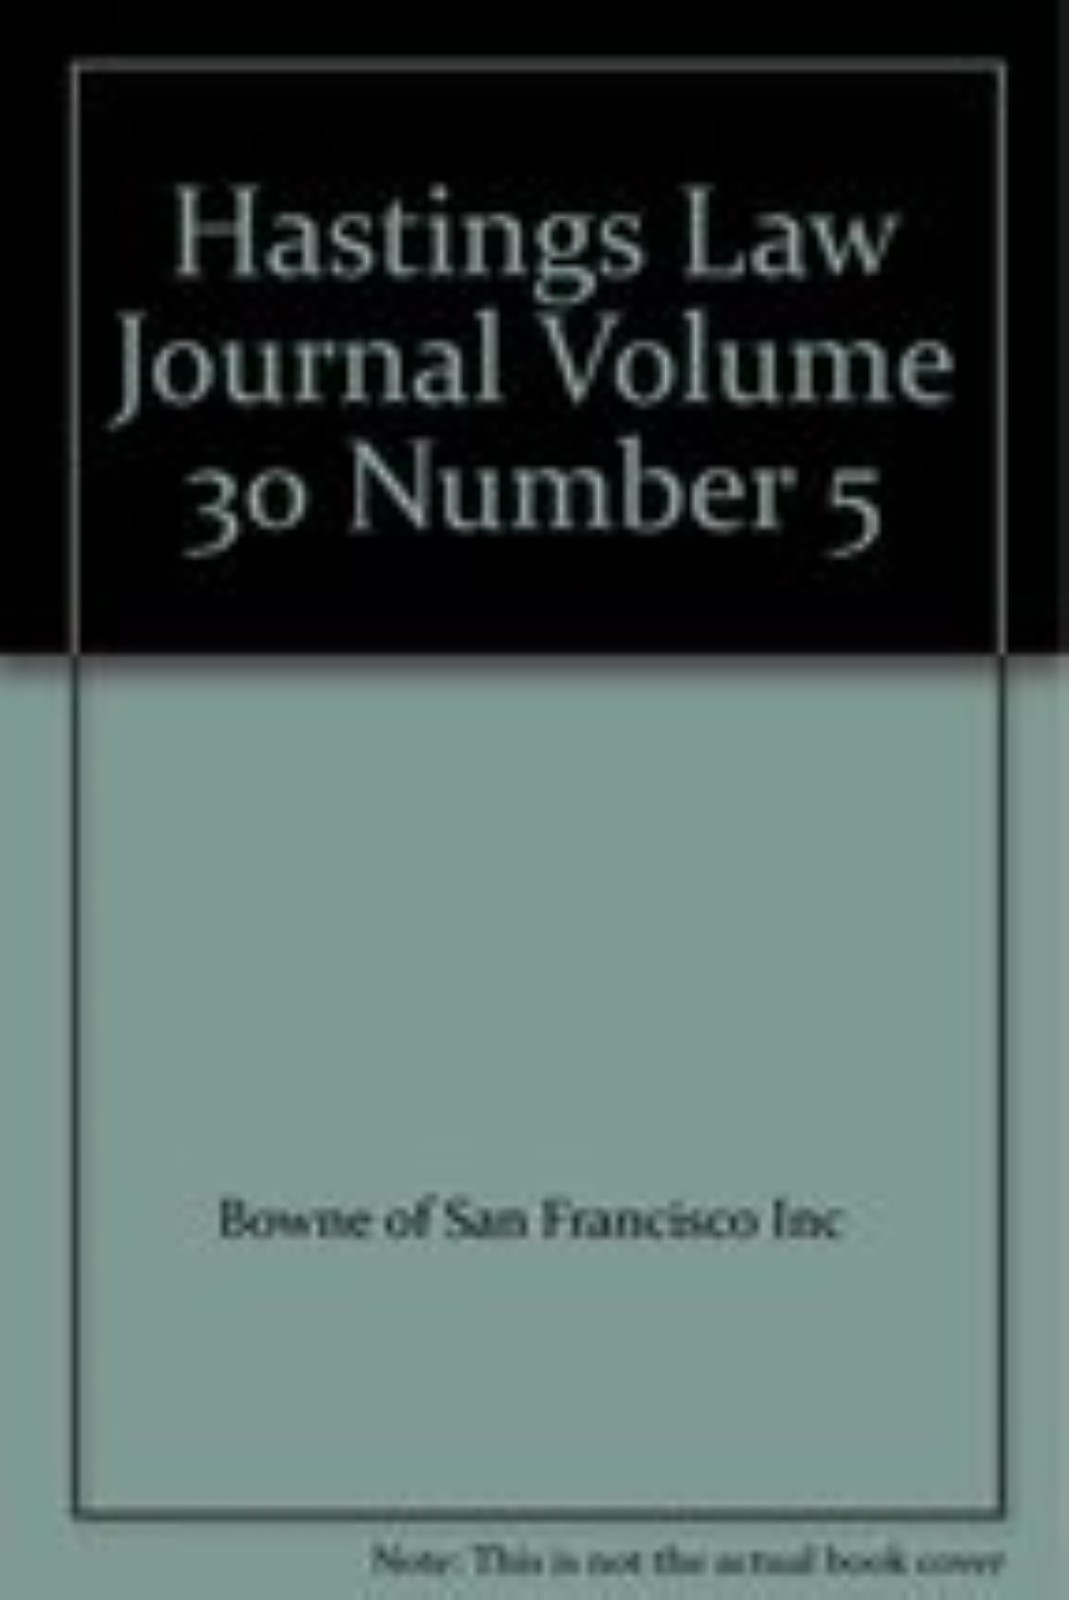 Hastings Law Journal Volume 30 Number 5